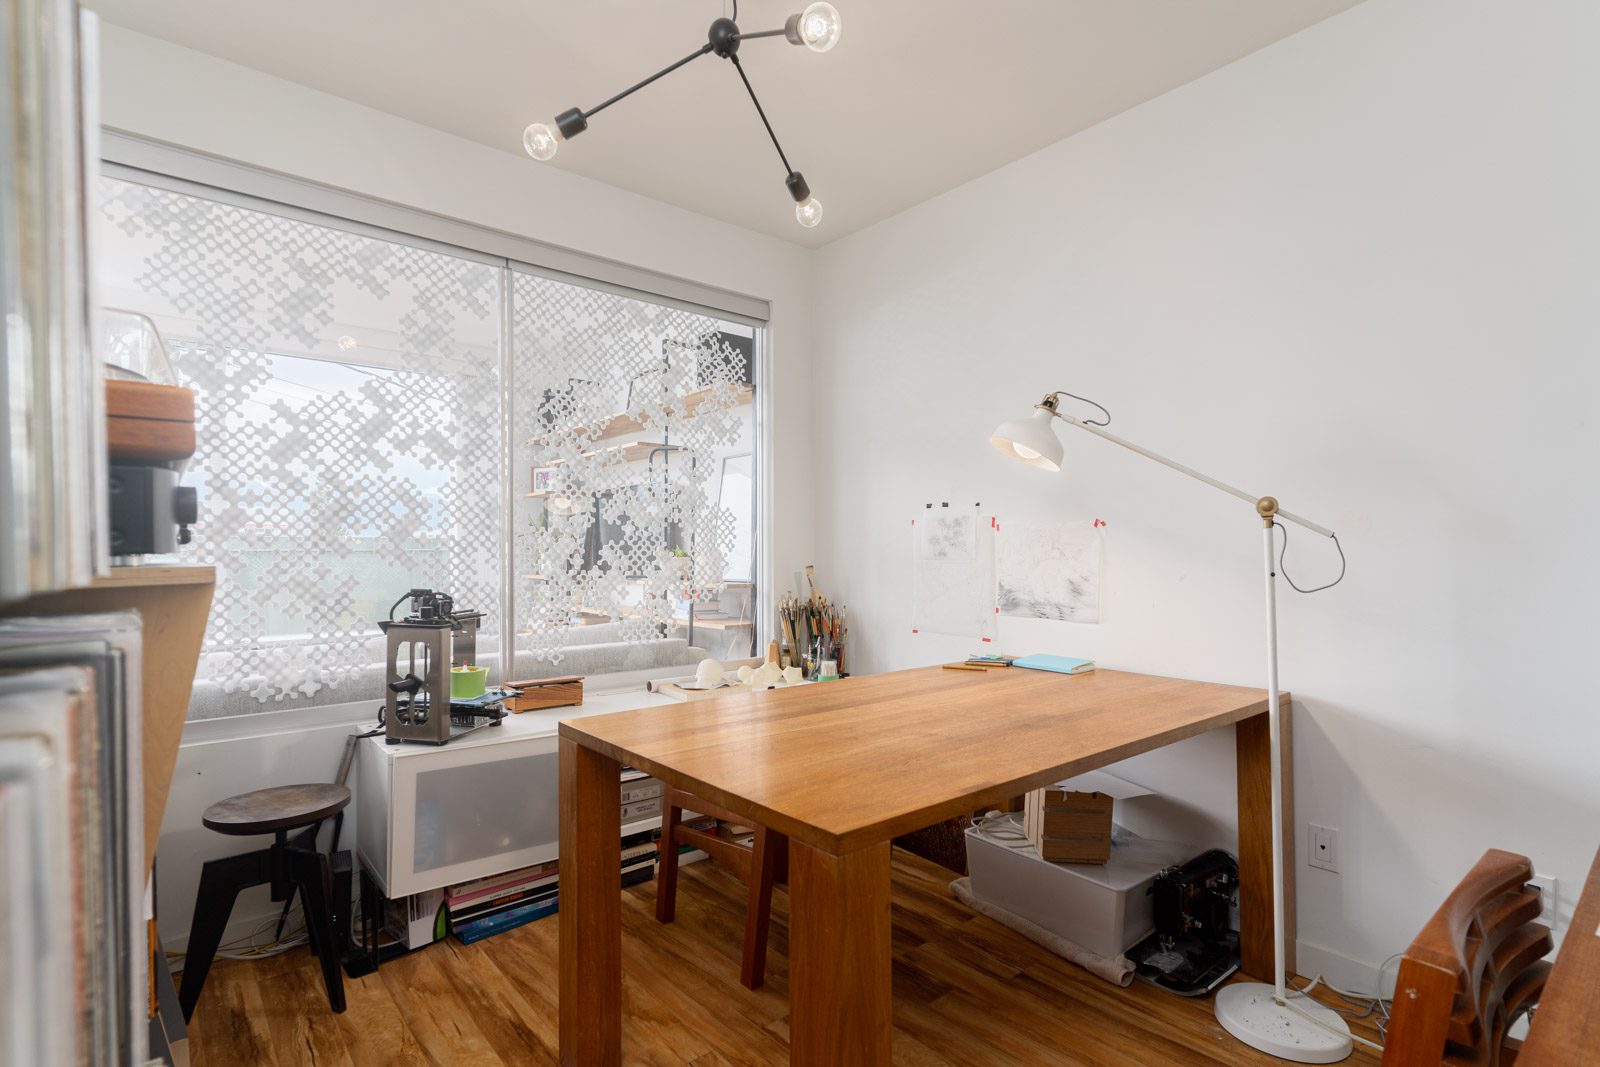 den with window view and white walls and laminate floors and windows in rental house in Vancouver